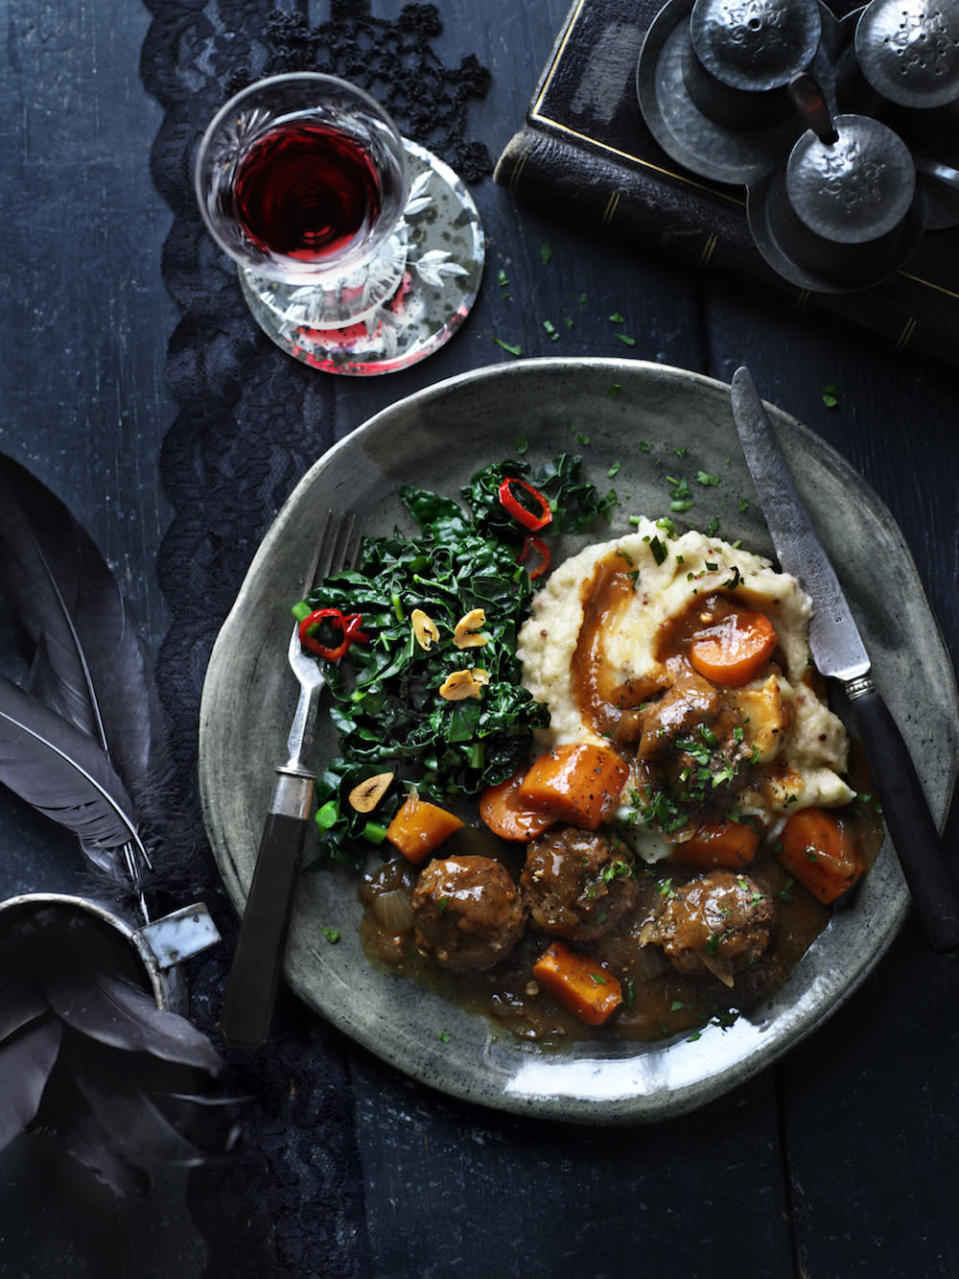 "<p>Apparently you can speed up the prep for <a href=""http://www.waitrose.com/content/waitrose/en/home/recipes/recipe_directory/b/beef-meatball-andguinessstew.html"" rel=""nofollow noopener"" target=""_blank"" data-ylk=""slk:this simple stew"" class=""link rapid-noclick-resp"">this simple stew</a> by Melissa and Jasmine Hemsley by using prepared meatballs. You can also make it in advance too! [Photo: <a href=""http://www.waitrose.com/recipes"" rel=""nofollow noopener"" target=""_blank"" data-ylk=""slk:www.waitrose.com/recipes"" class=""link rapid-noclick-resp"">www.waitrose.com/recipes</a>] </p>"